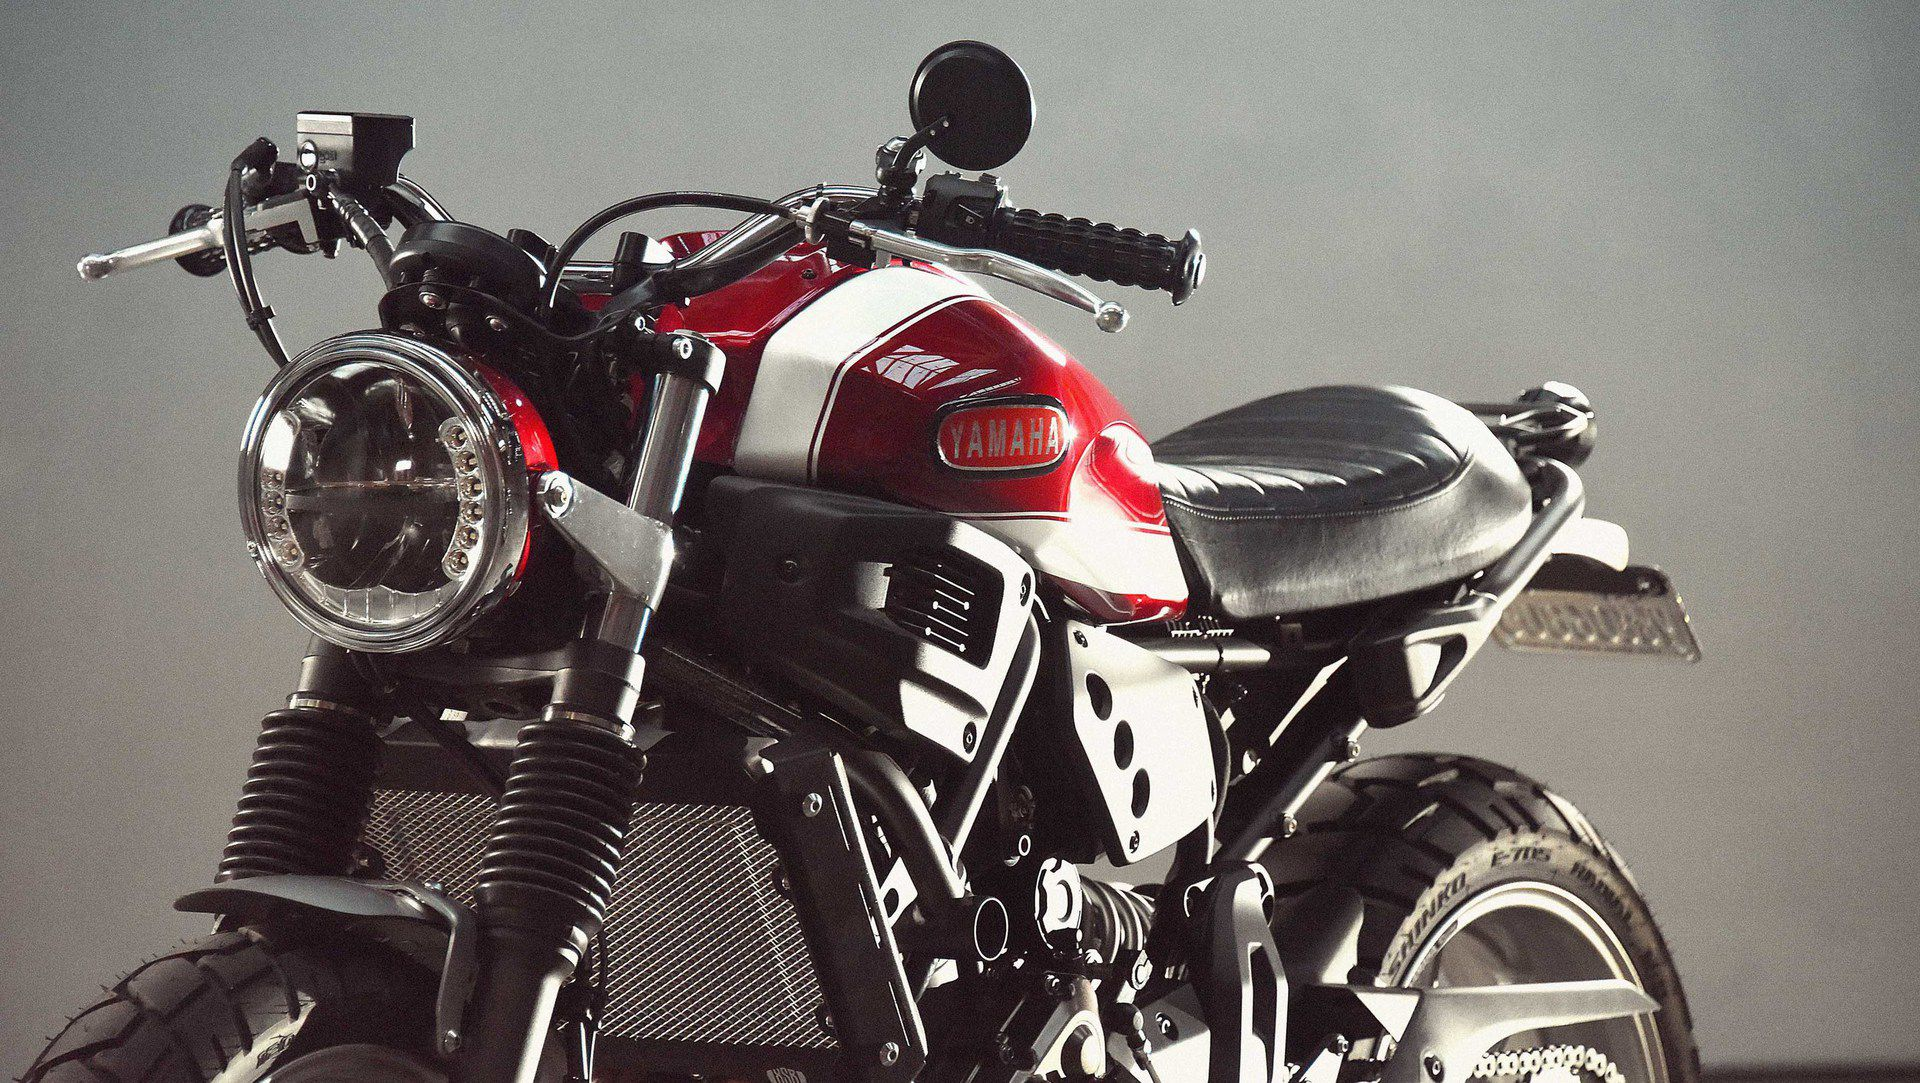 Garage Yamaha Faster Son Yamaha Xsr700 By Greg Hageman Adds To Yard Built